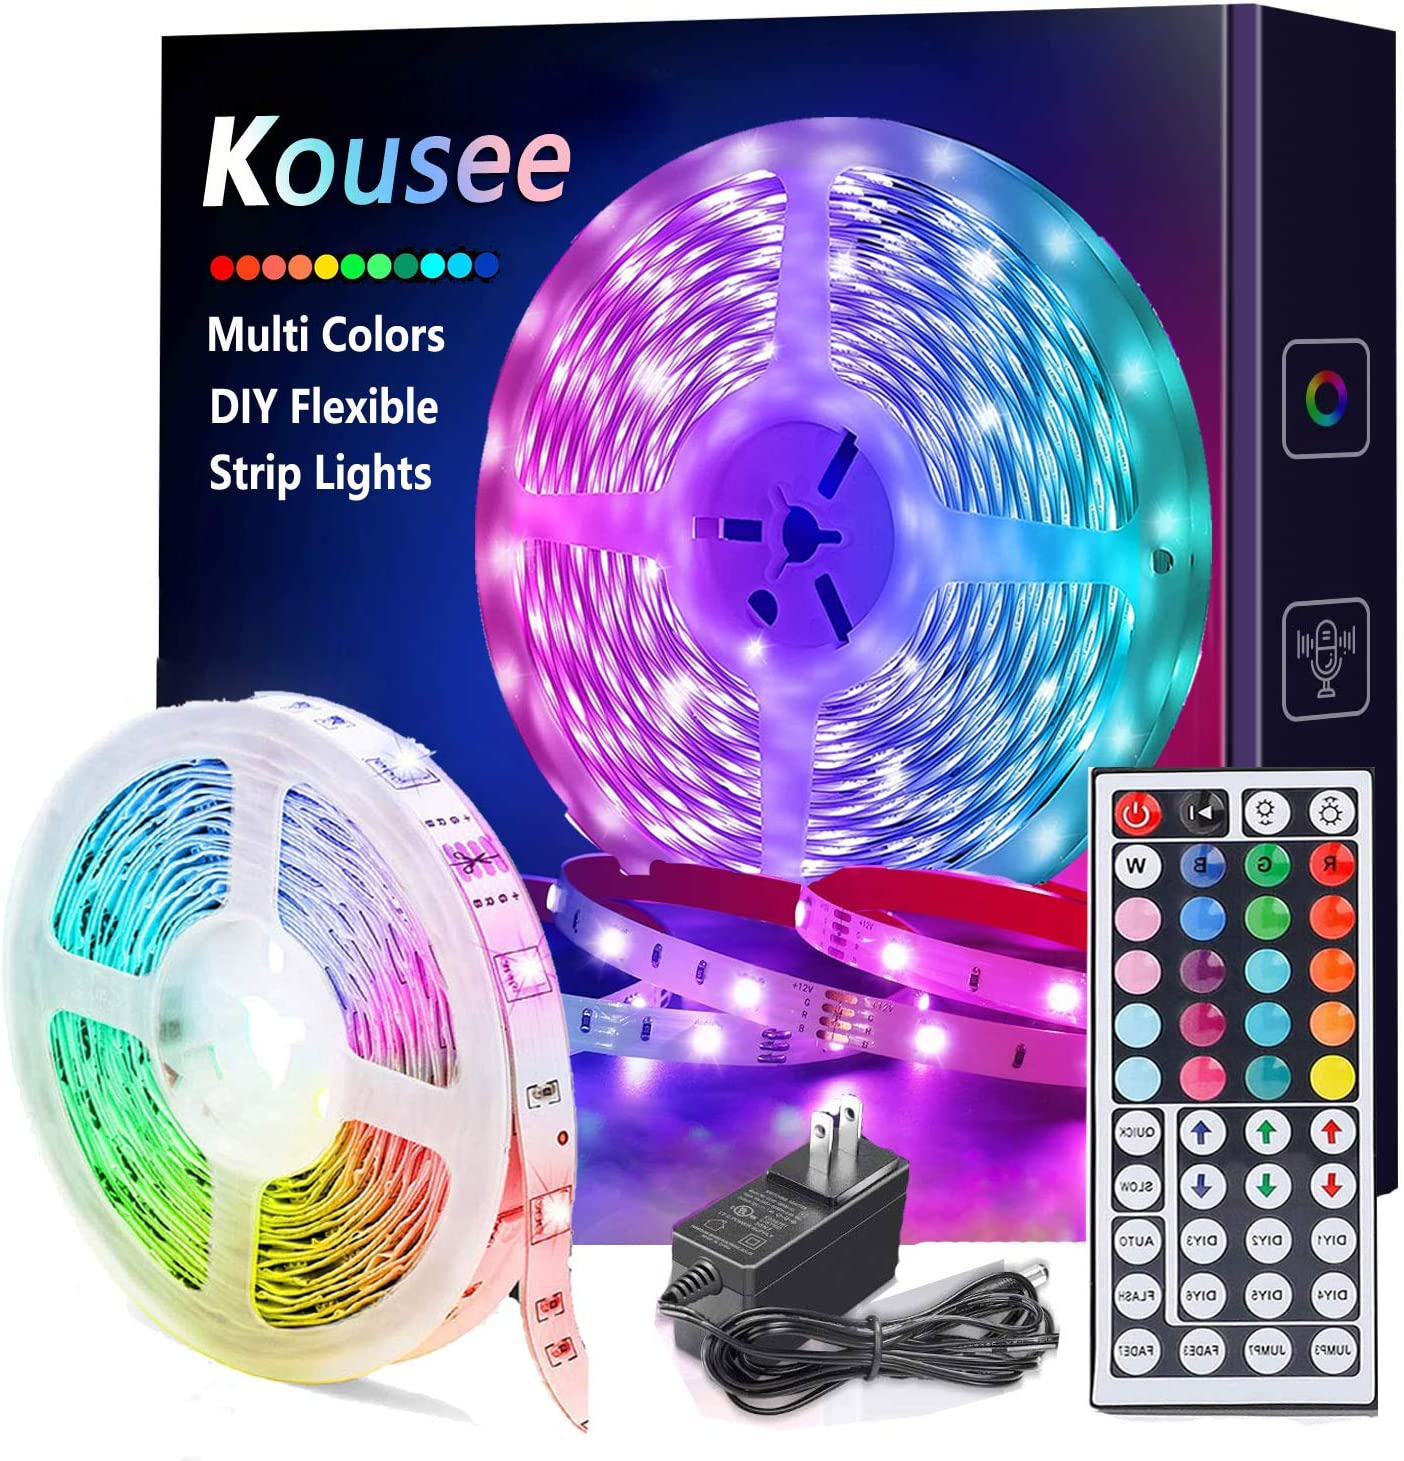 5m//16.4ft RGB Smart WIFI LED Strip Lights Dimmable Color APP Remote Control V7A5